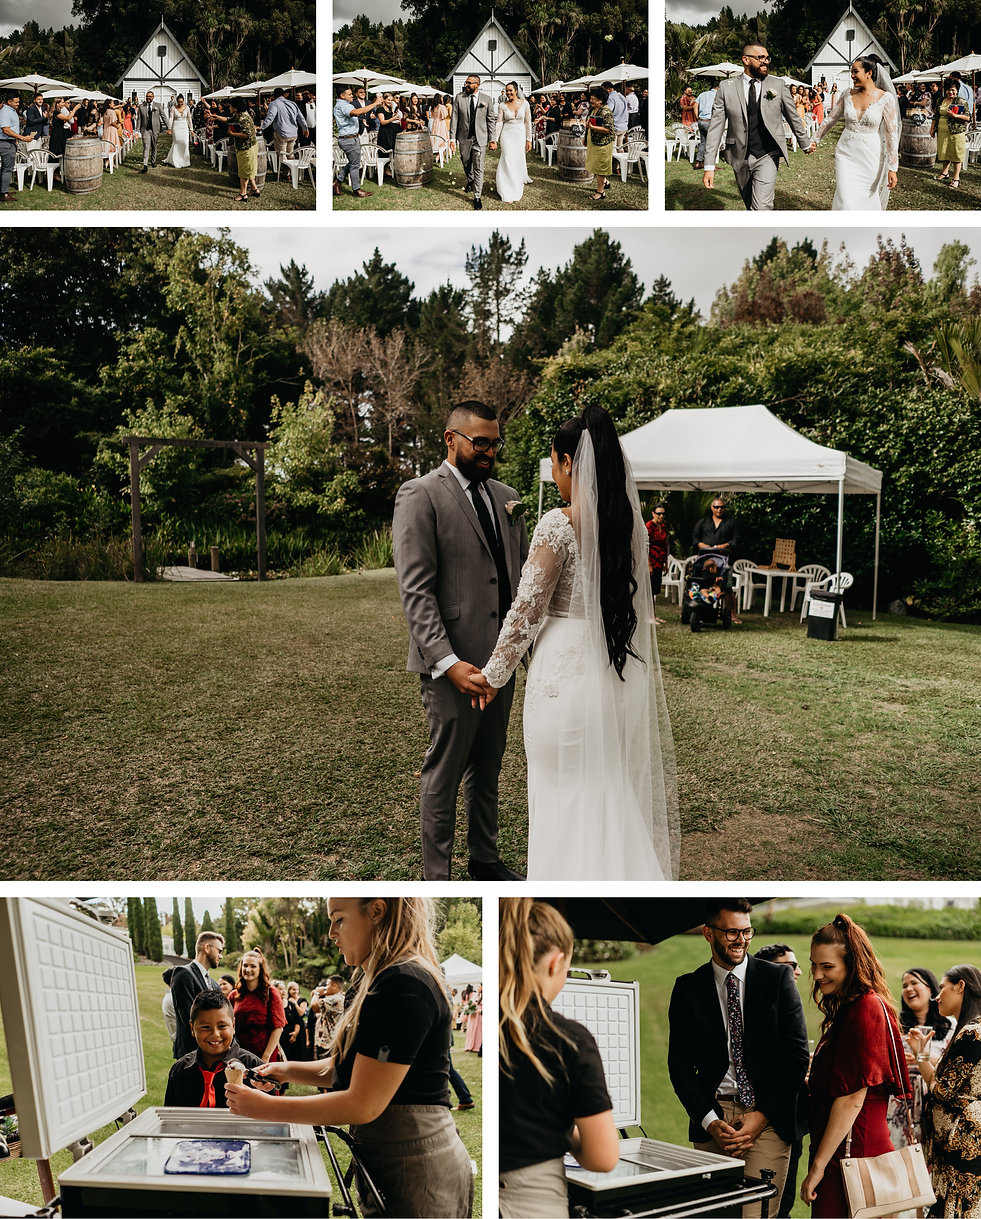 wedding cereomony at bridegwater estate in auckland, new zealand captued by wanderlusting lovers